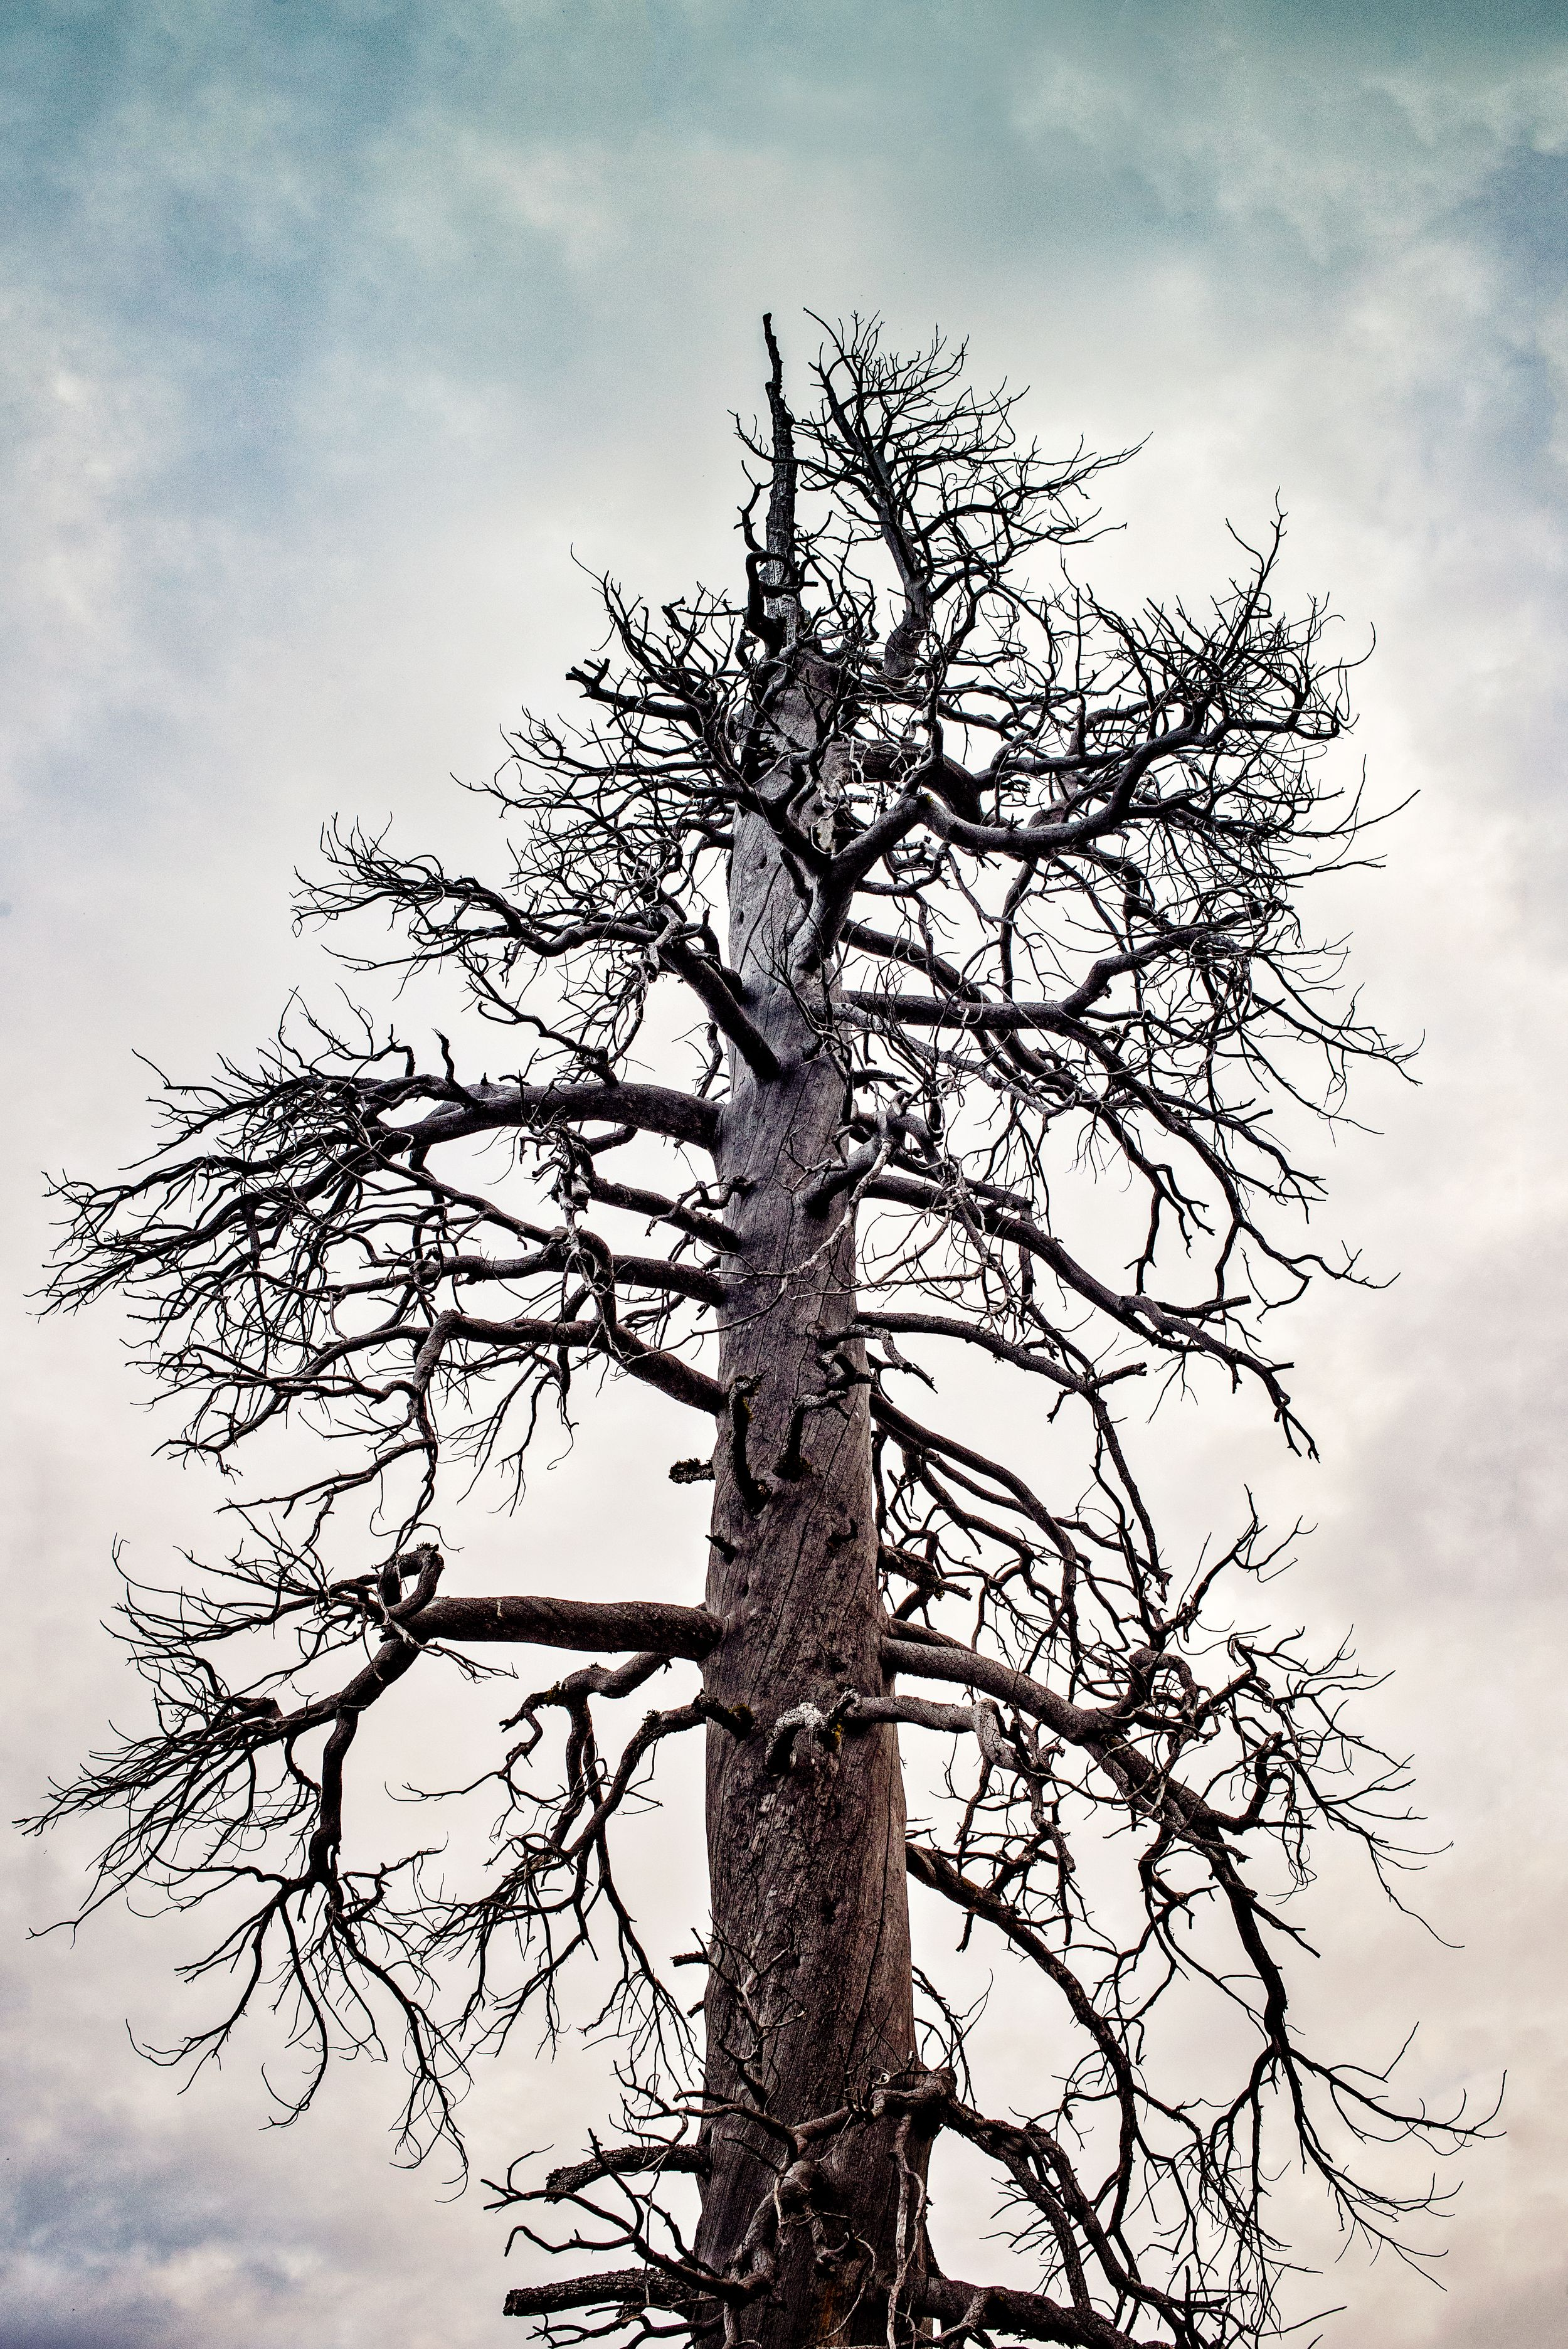 Desolation Wilderness Barren Tree by plymouth ma photographer Heidi Harting